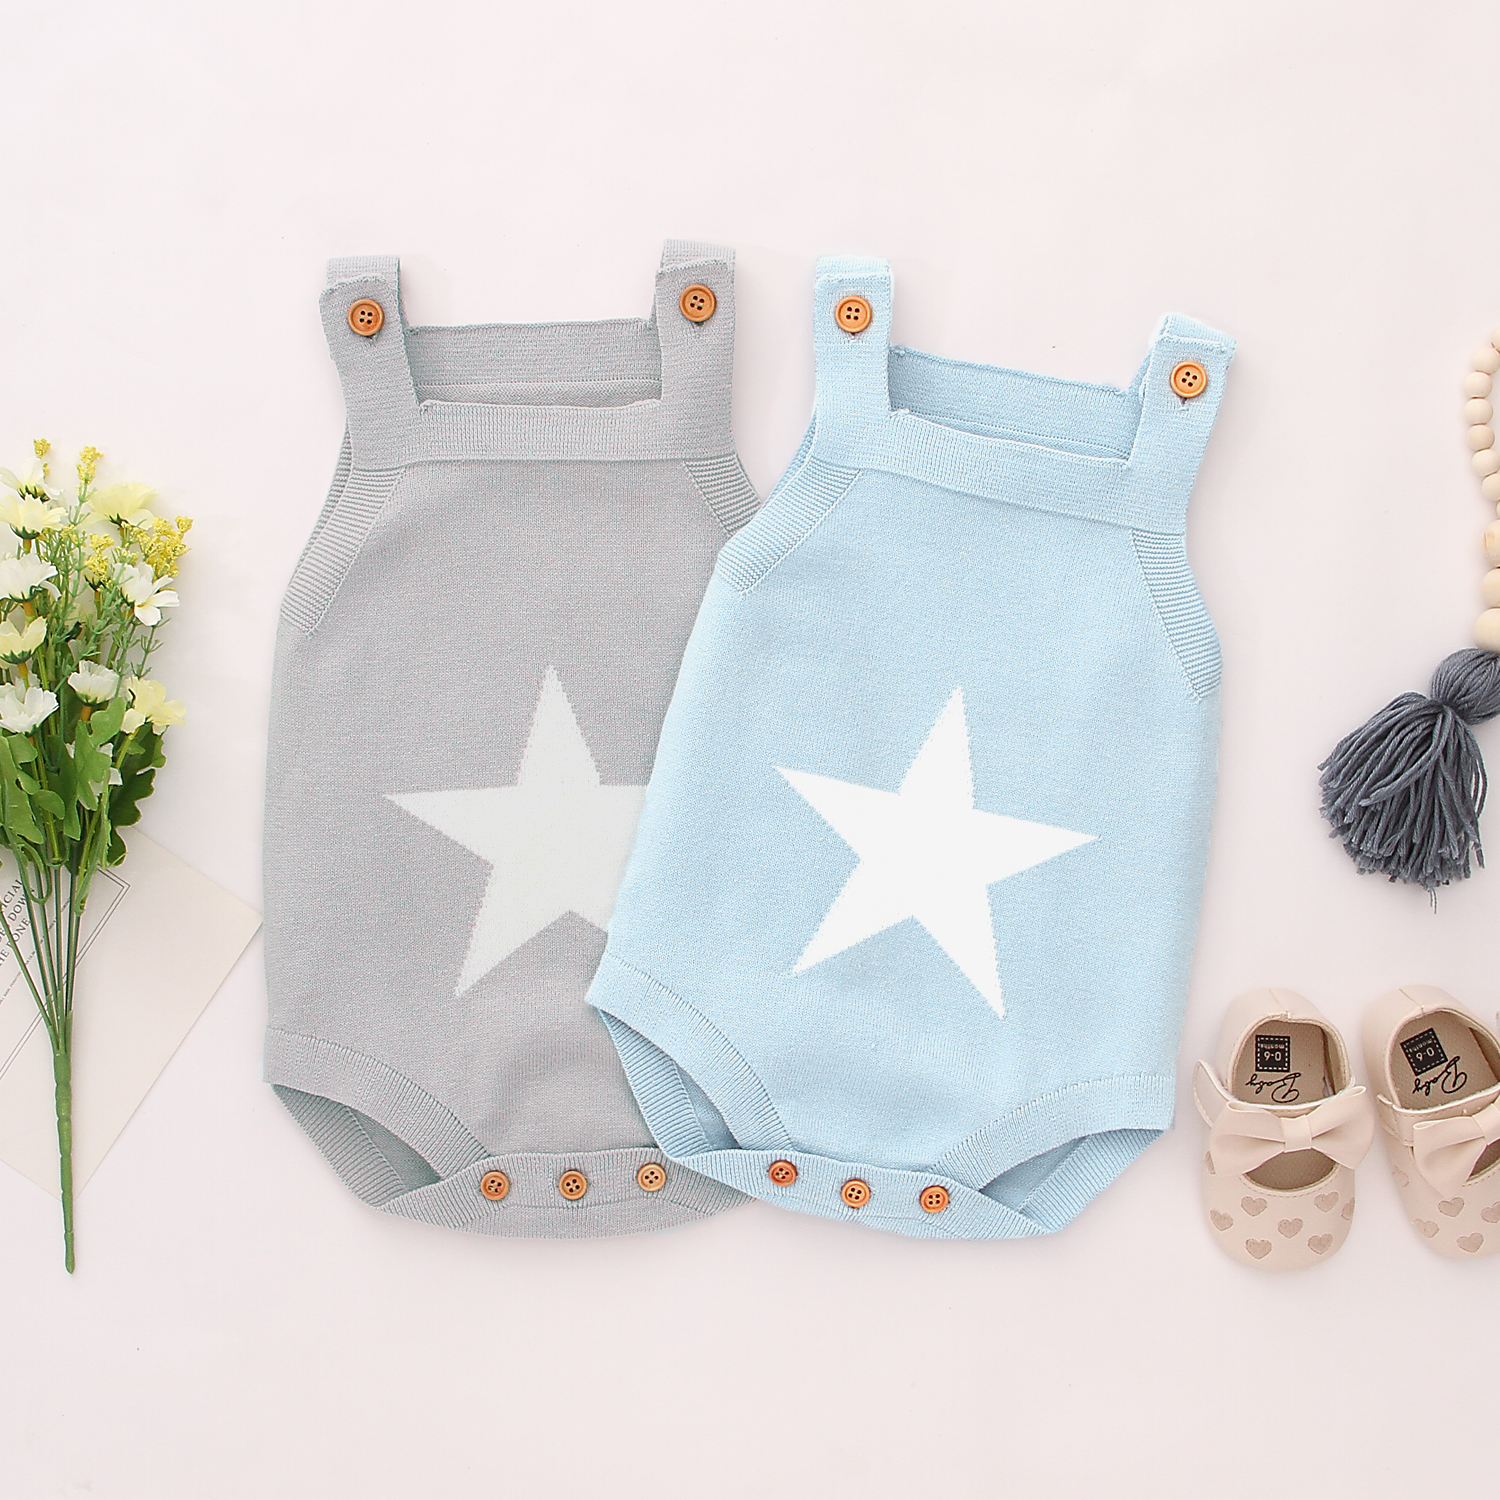 Autumn Bodysuits For Boys Onesie White Star Knitted Newborn <font><b>Baby</b></font> Girls Coveralls Sleeveless Toddler Jumpsuits Children <font><b>Body</b></font> Suit image